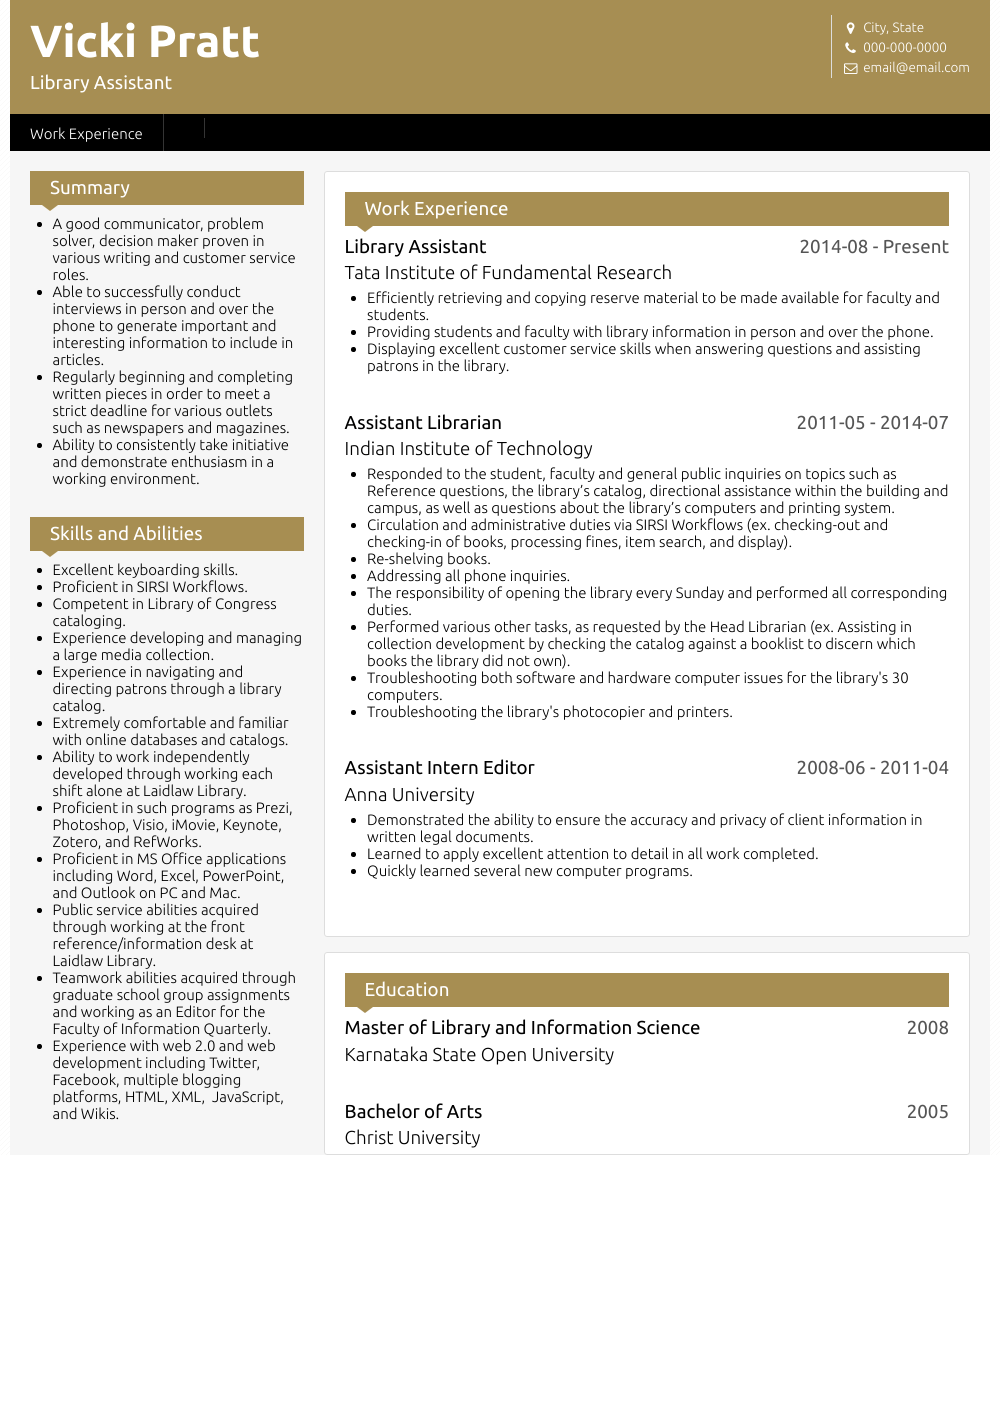 cv with no work experience example